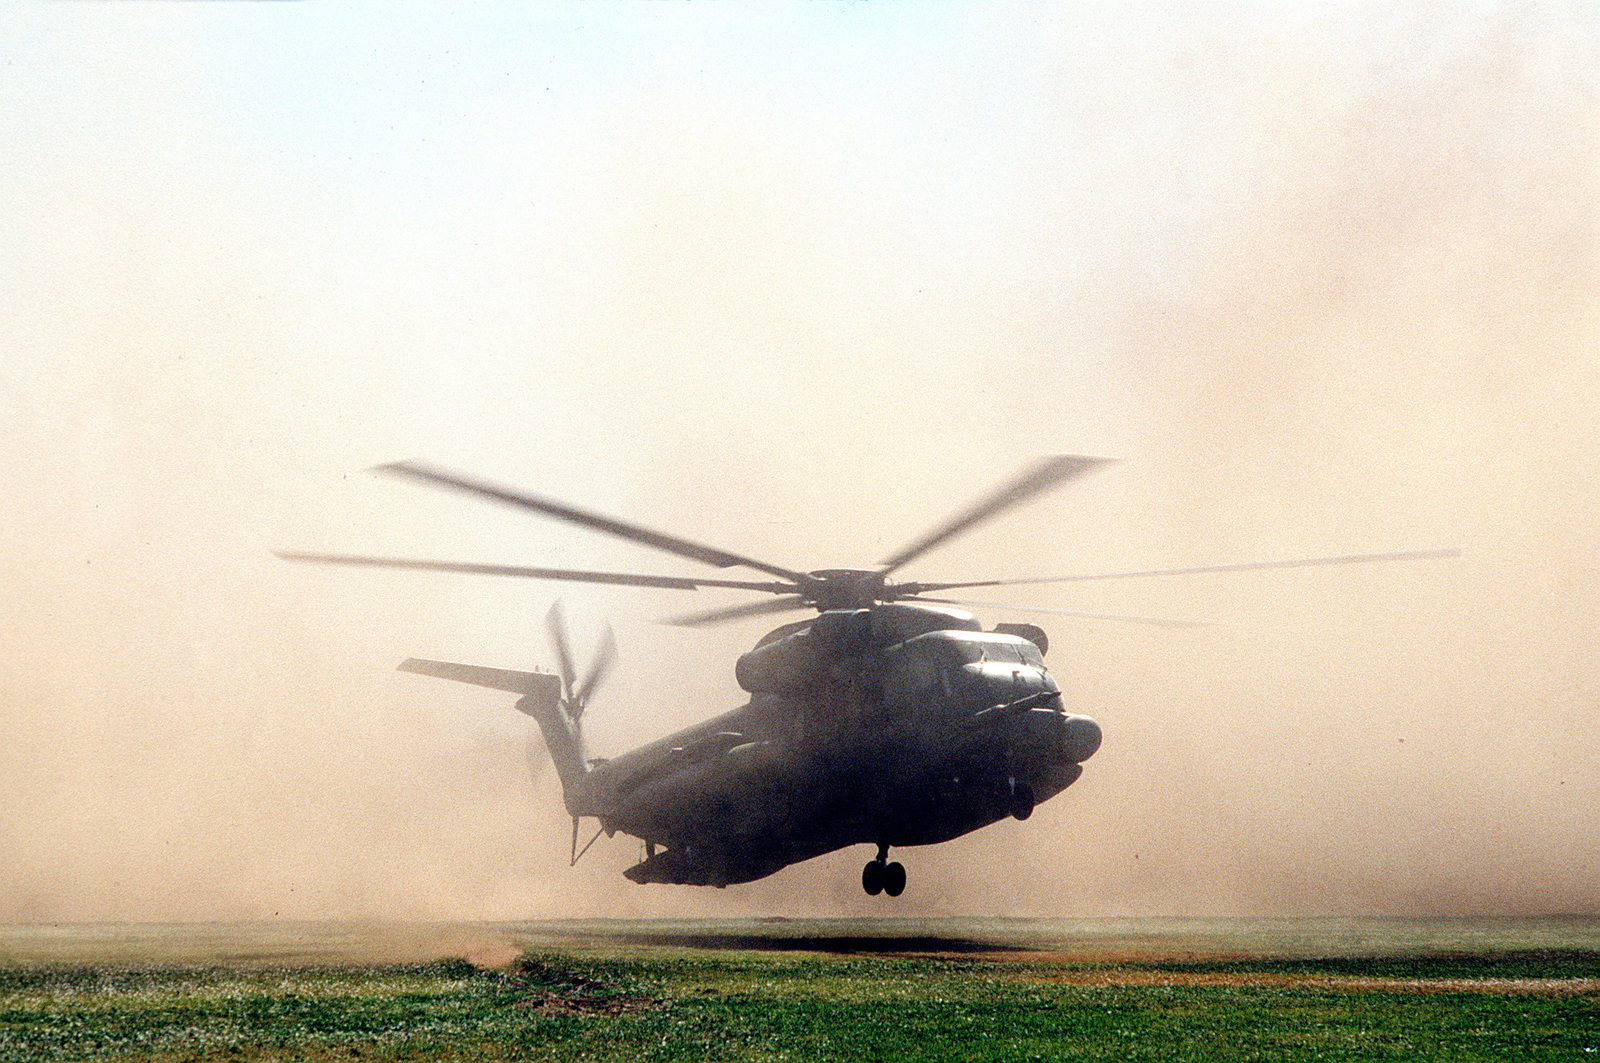 A right front view of an HH-53 helicopter as it lands during BRIGHT STAR '82, an exercise involving troops from the US, Egypt, Sudan, Somalia and Oman